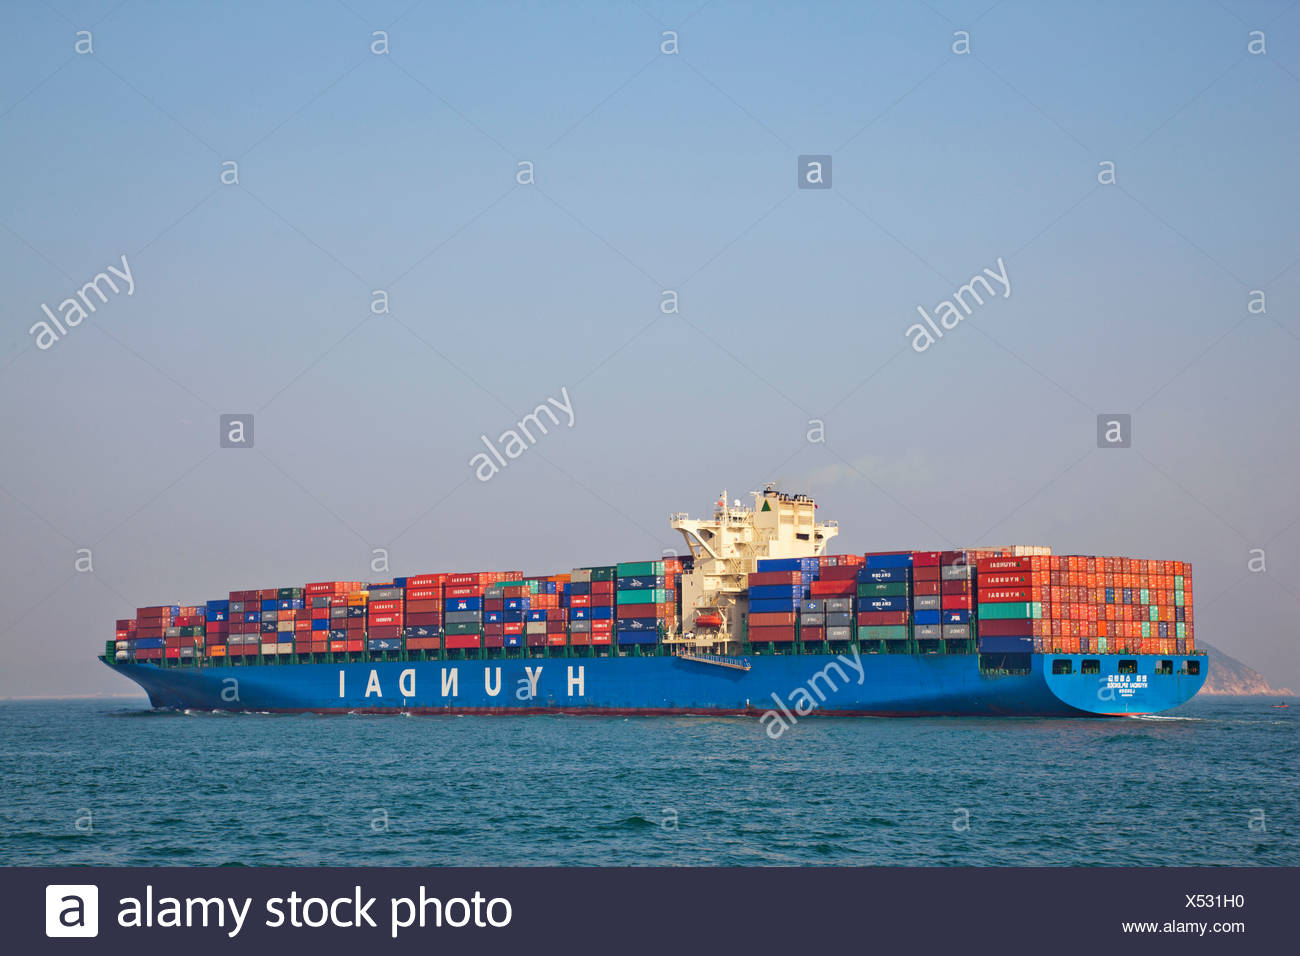 Asia, China, Hong Kong, Container Ship, Ships, Shipping, Containers, Trade, Commerce, Cargo, Freight, Sea Cargo, Sea Freight, Se - Stock Image